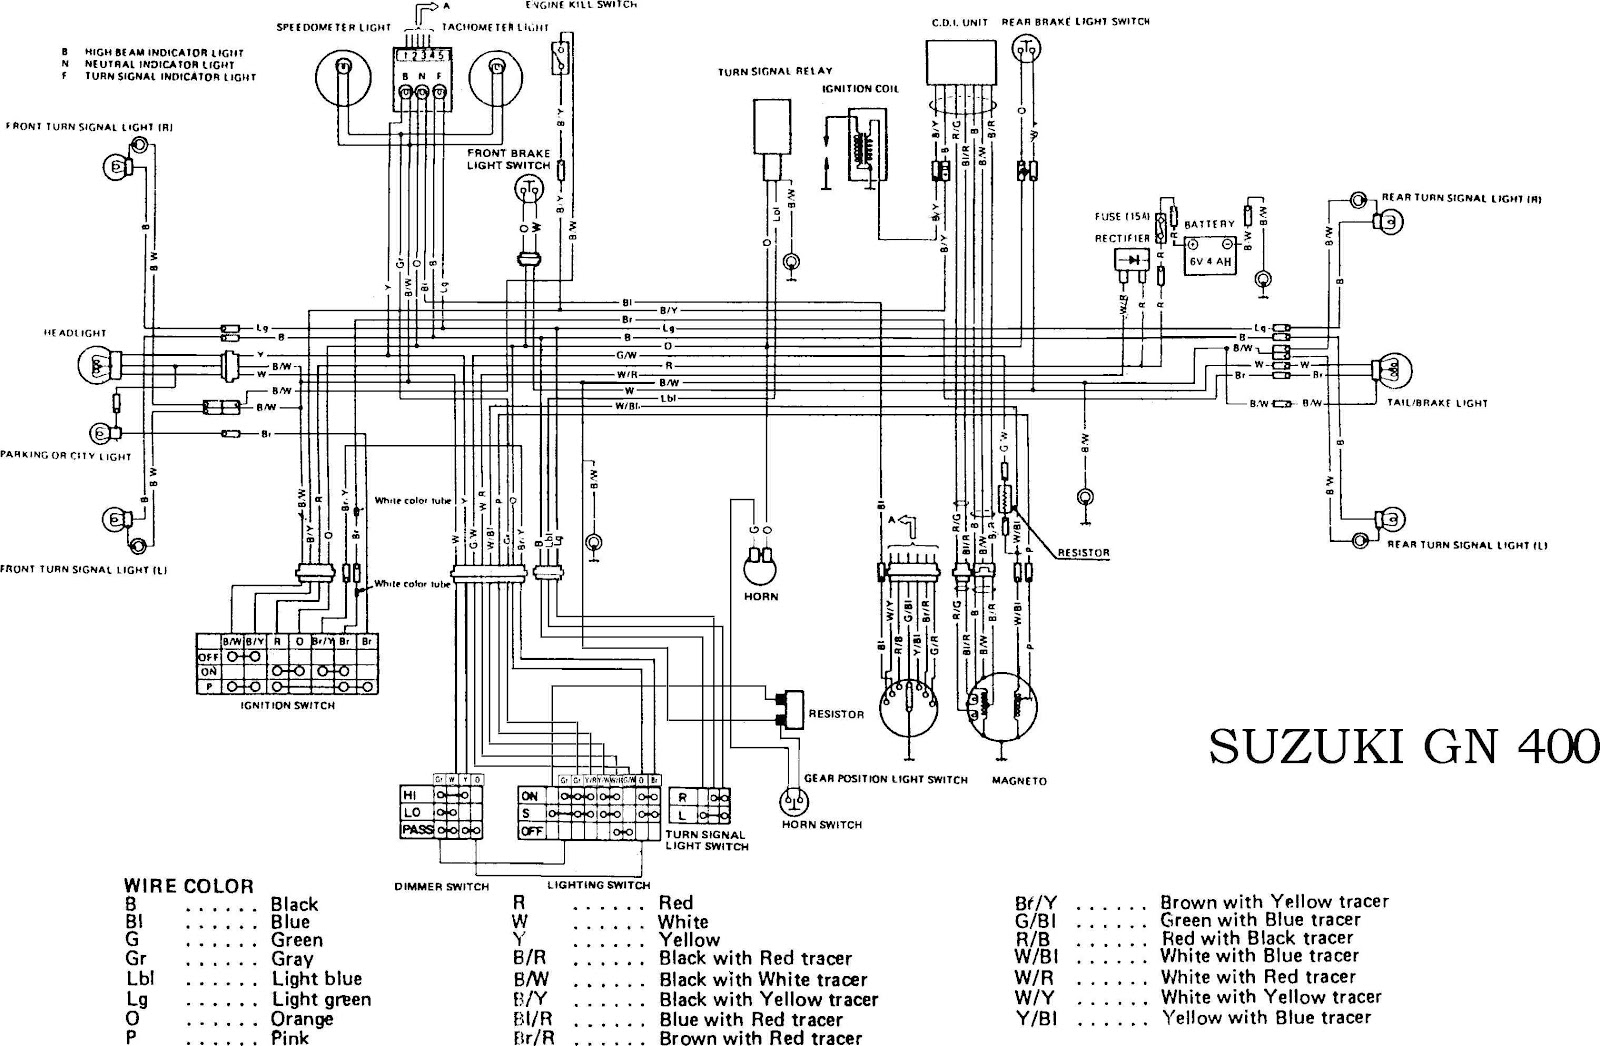 ford expedition ignition wiring diagram with Suzuki Gsx R600 Srad Motorcycle 1998 on 5h5hx 90 F150 Months Ago Wouldn T Start besides 41392 L322 Trans Failsafe Message Fuse 54 A 2 in addition 4f02o 1996 Chevy Suburban Press 4wd Hi Low Shifts Actuator further Chevrolet Malibu Body Control Module Location 03 besides Suzuki Gsx R600 Srad Motorcycle 1998.